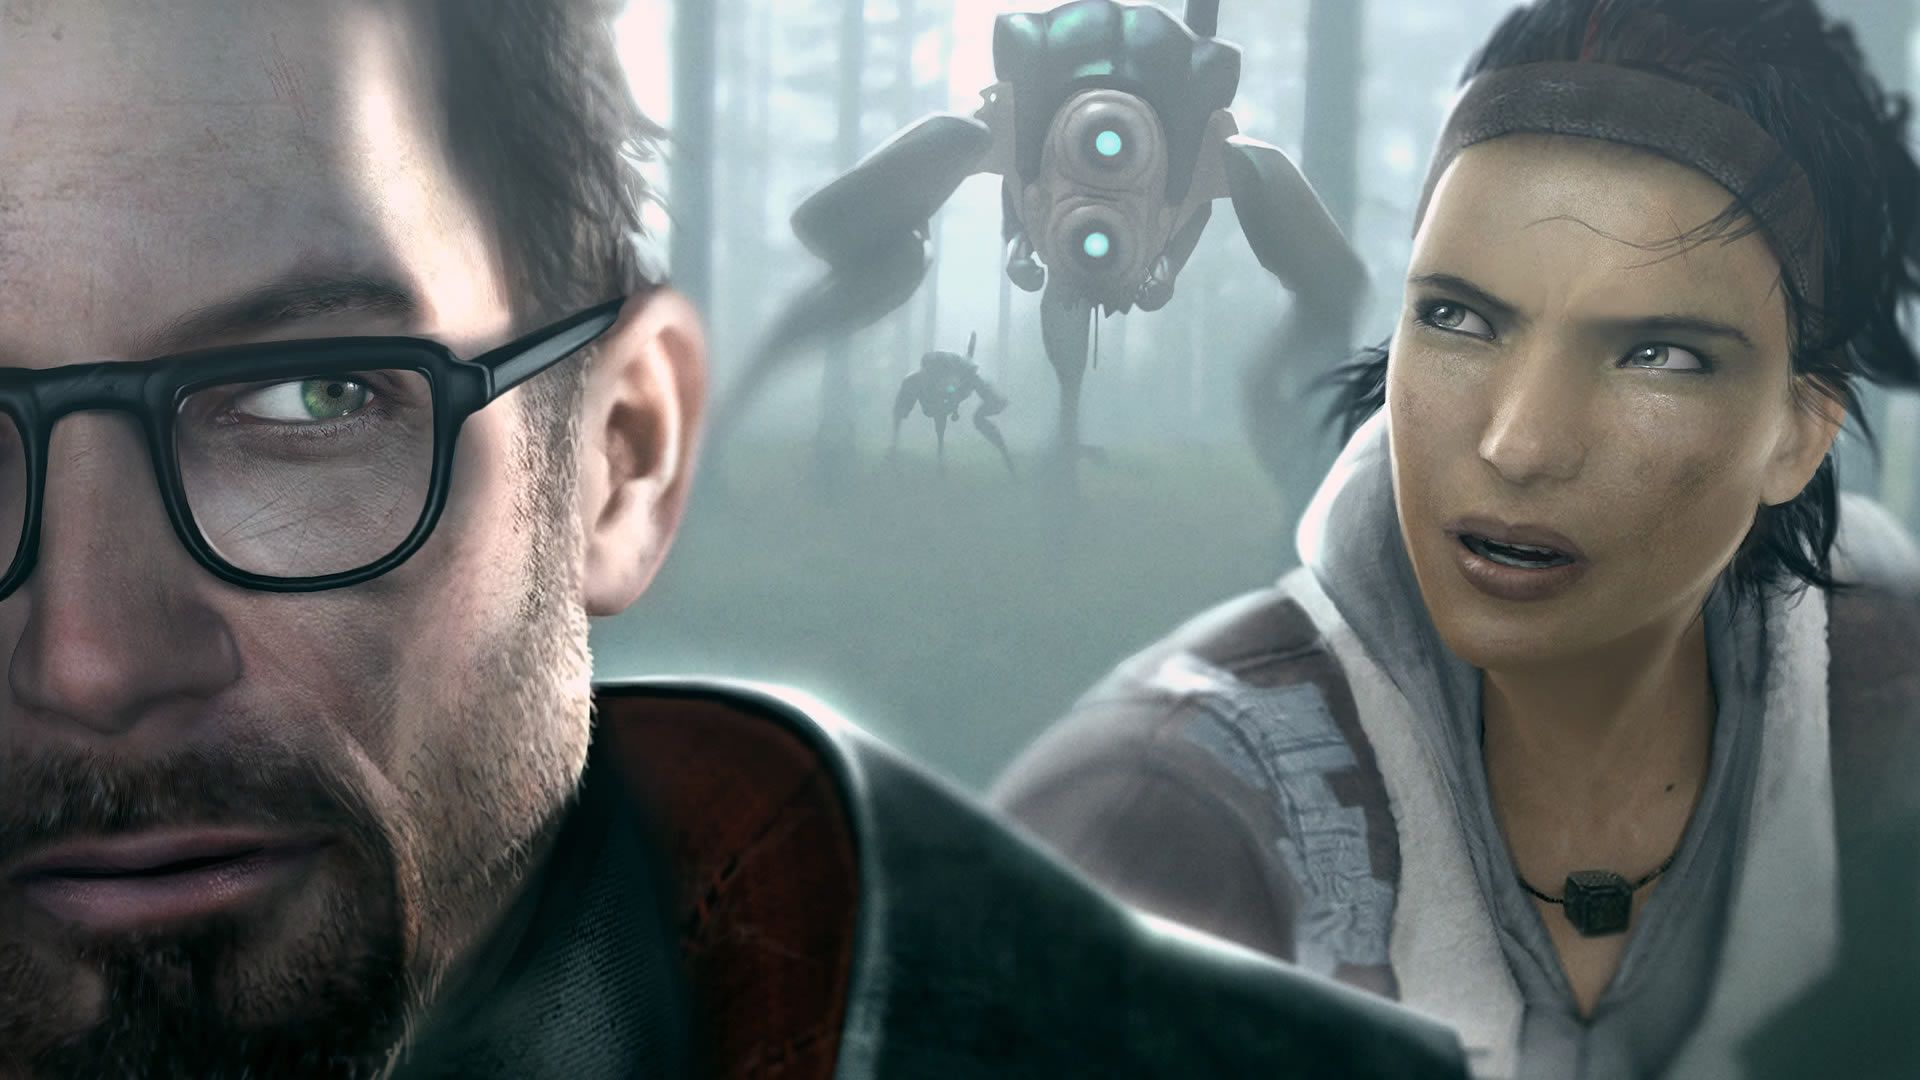 Half Life 2 Wallpapers Top Free Half Life 2 Backgrounds